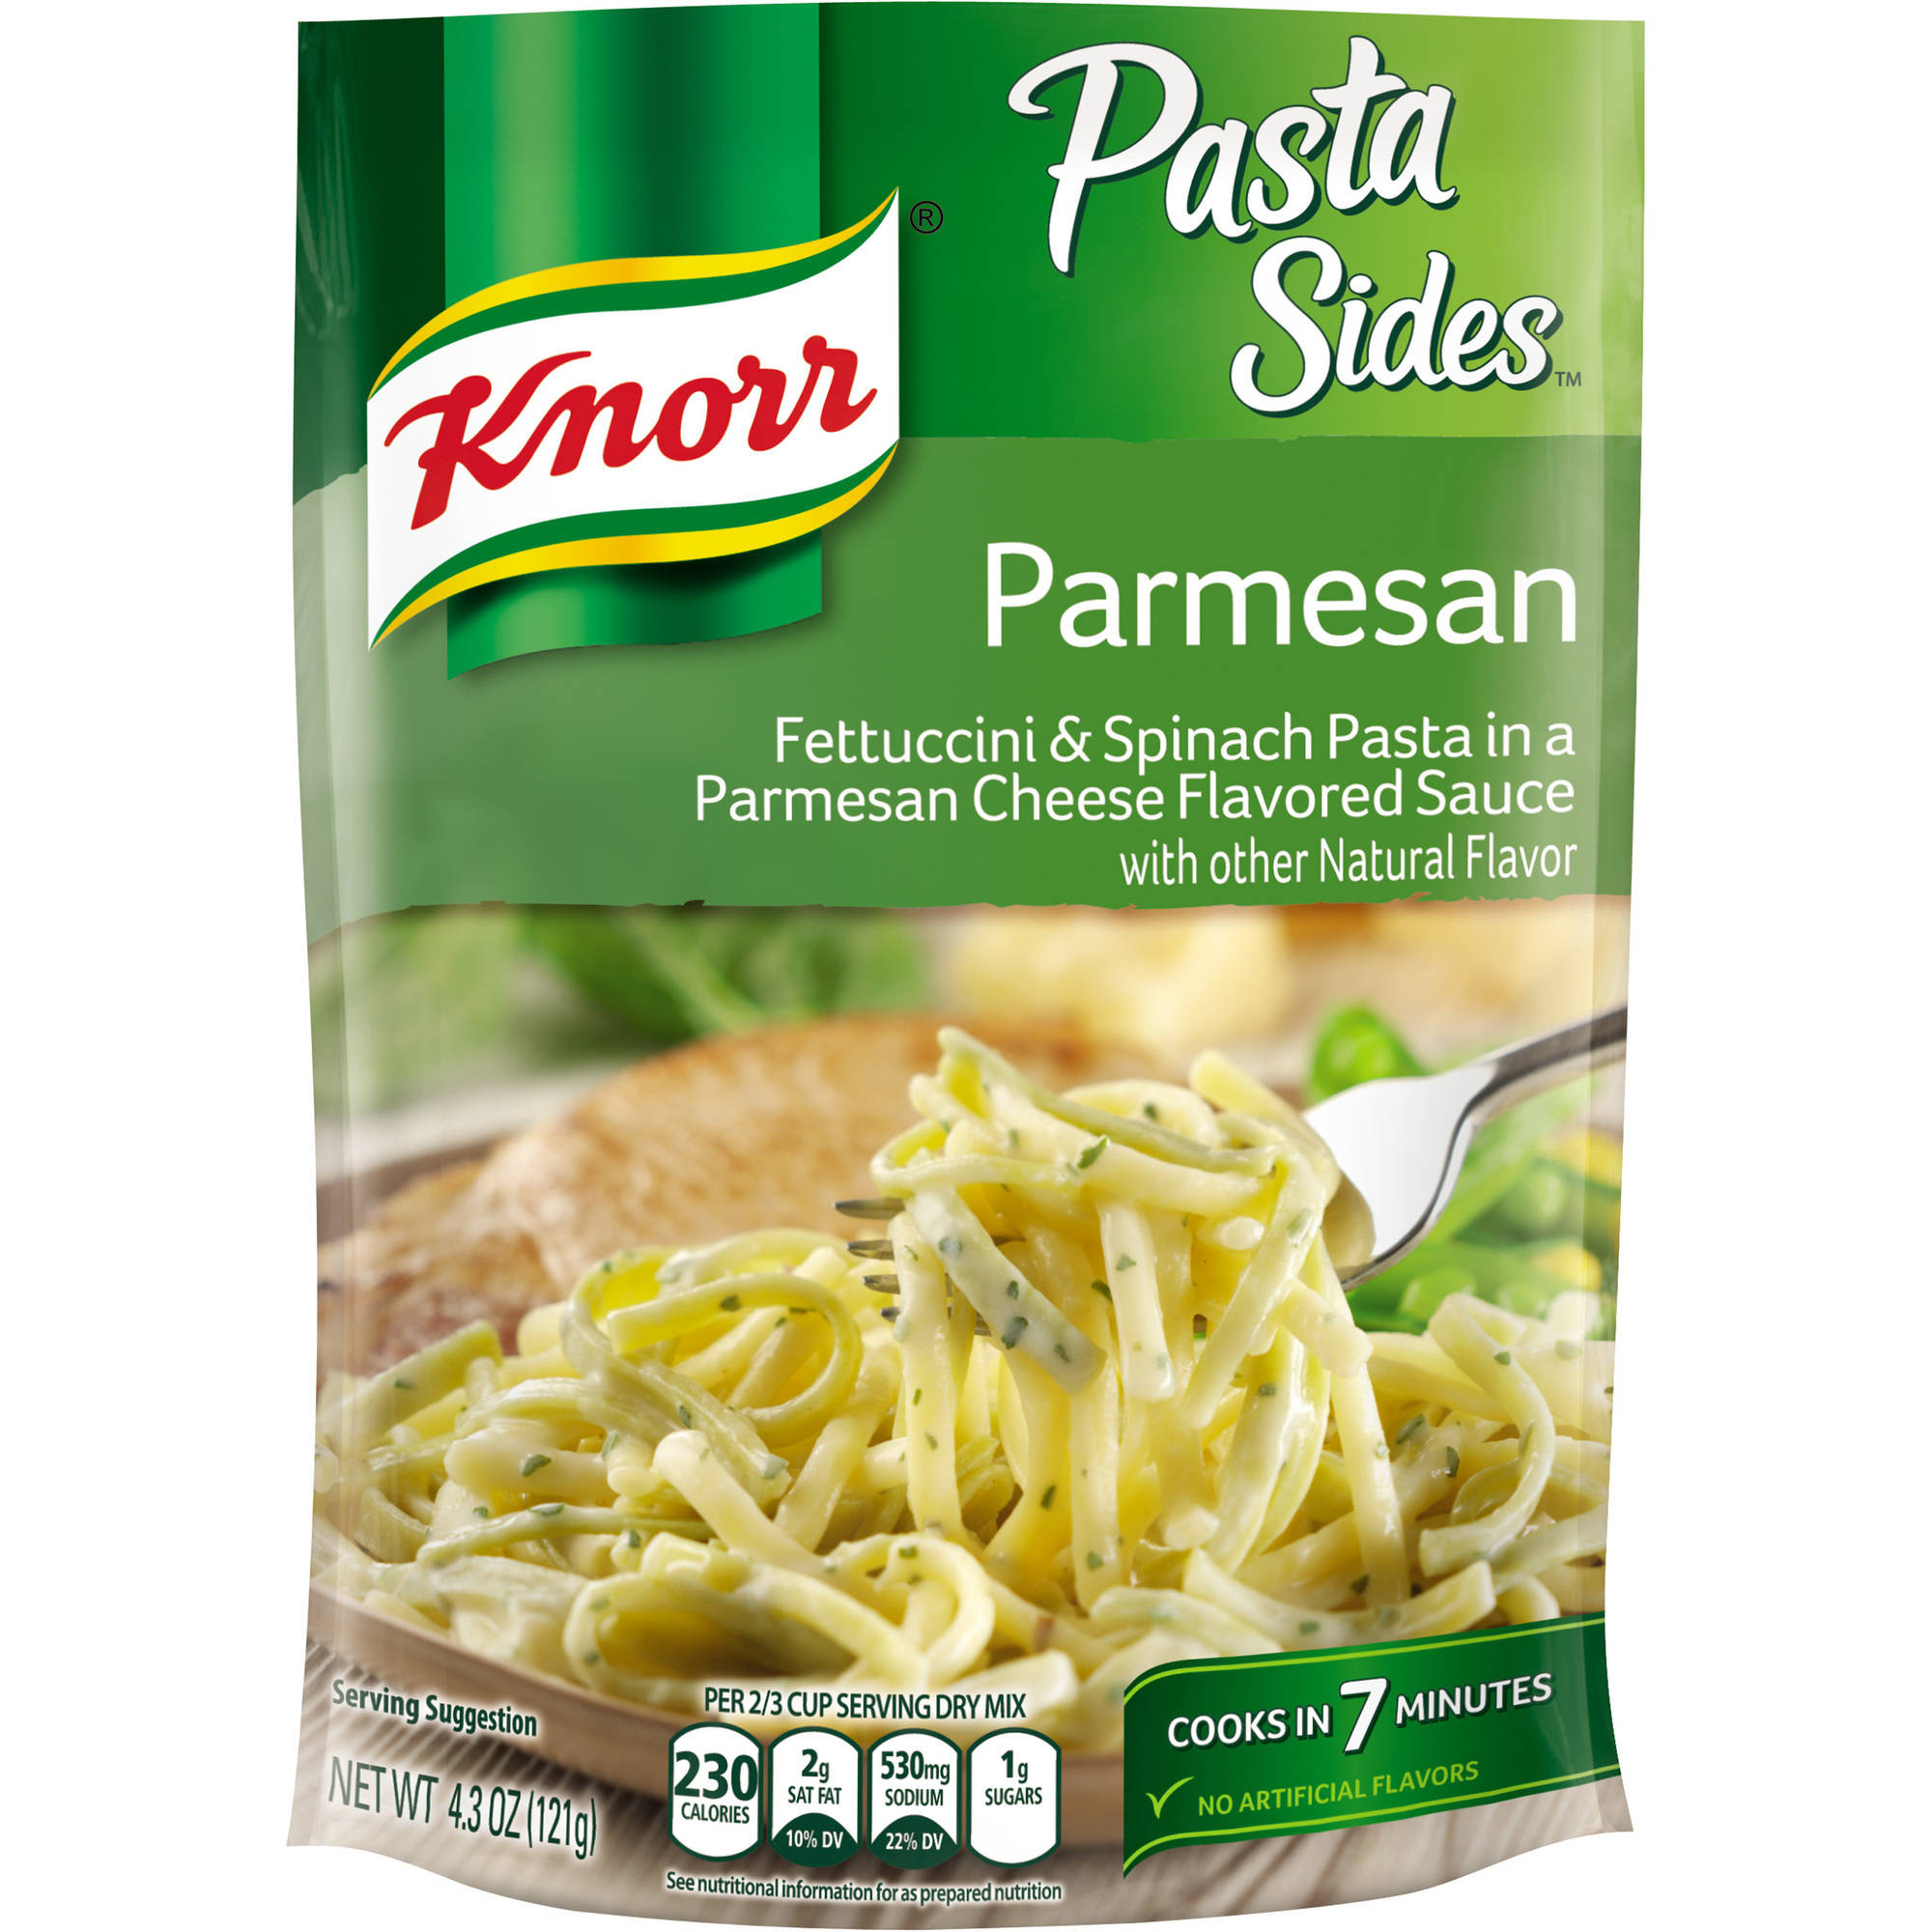 Knorr Pasta Sides Fettuccini & Spinach Pasta In A Parmesan Cheese Sauce, 4.3 Oz